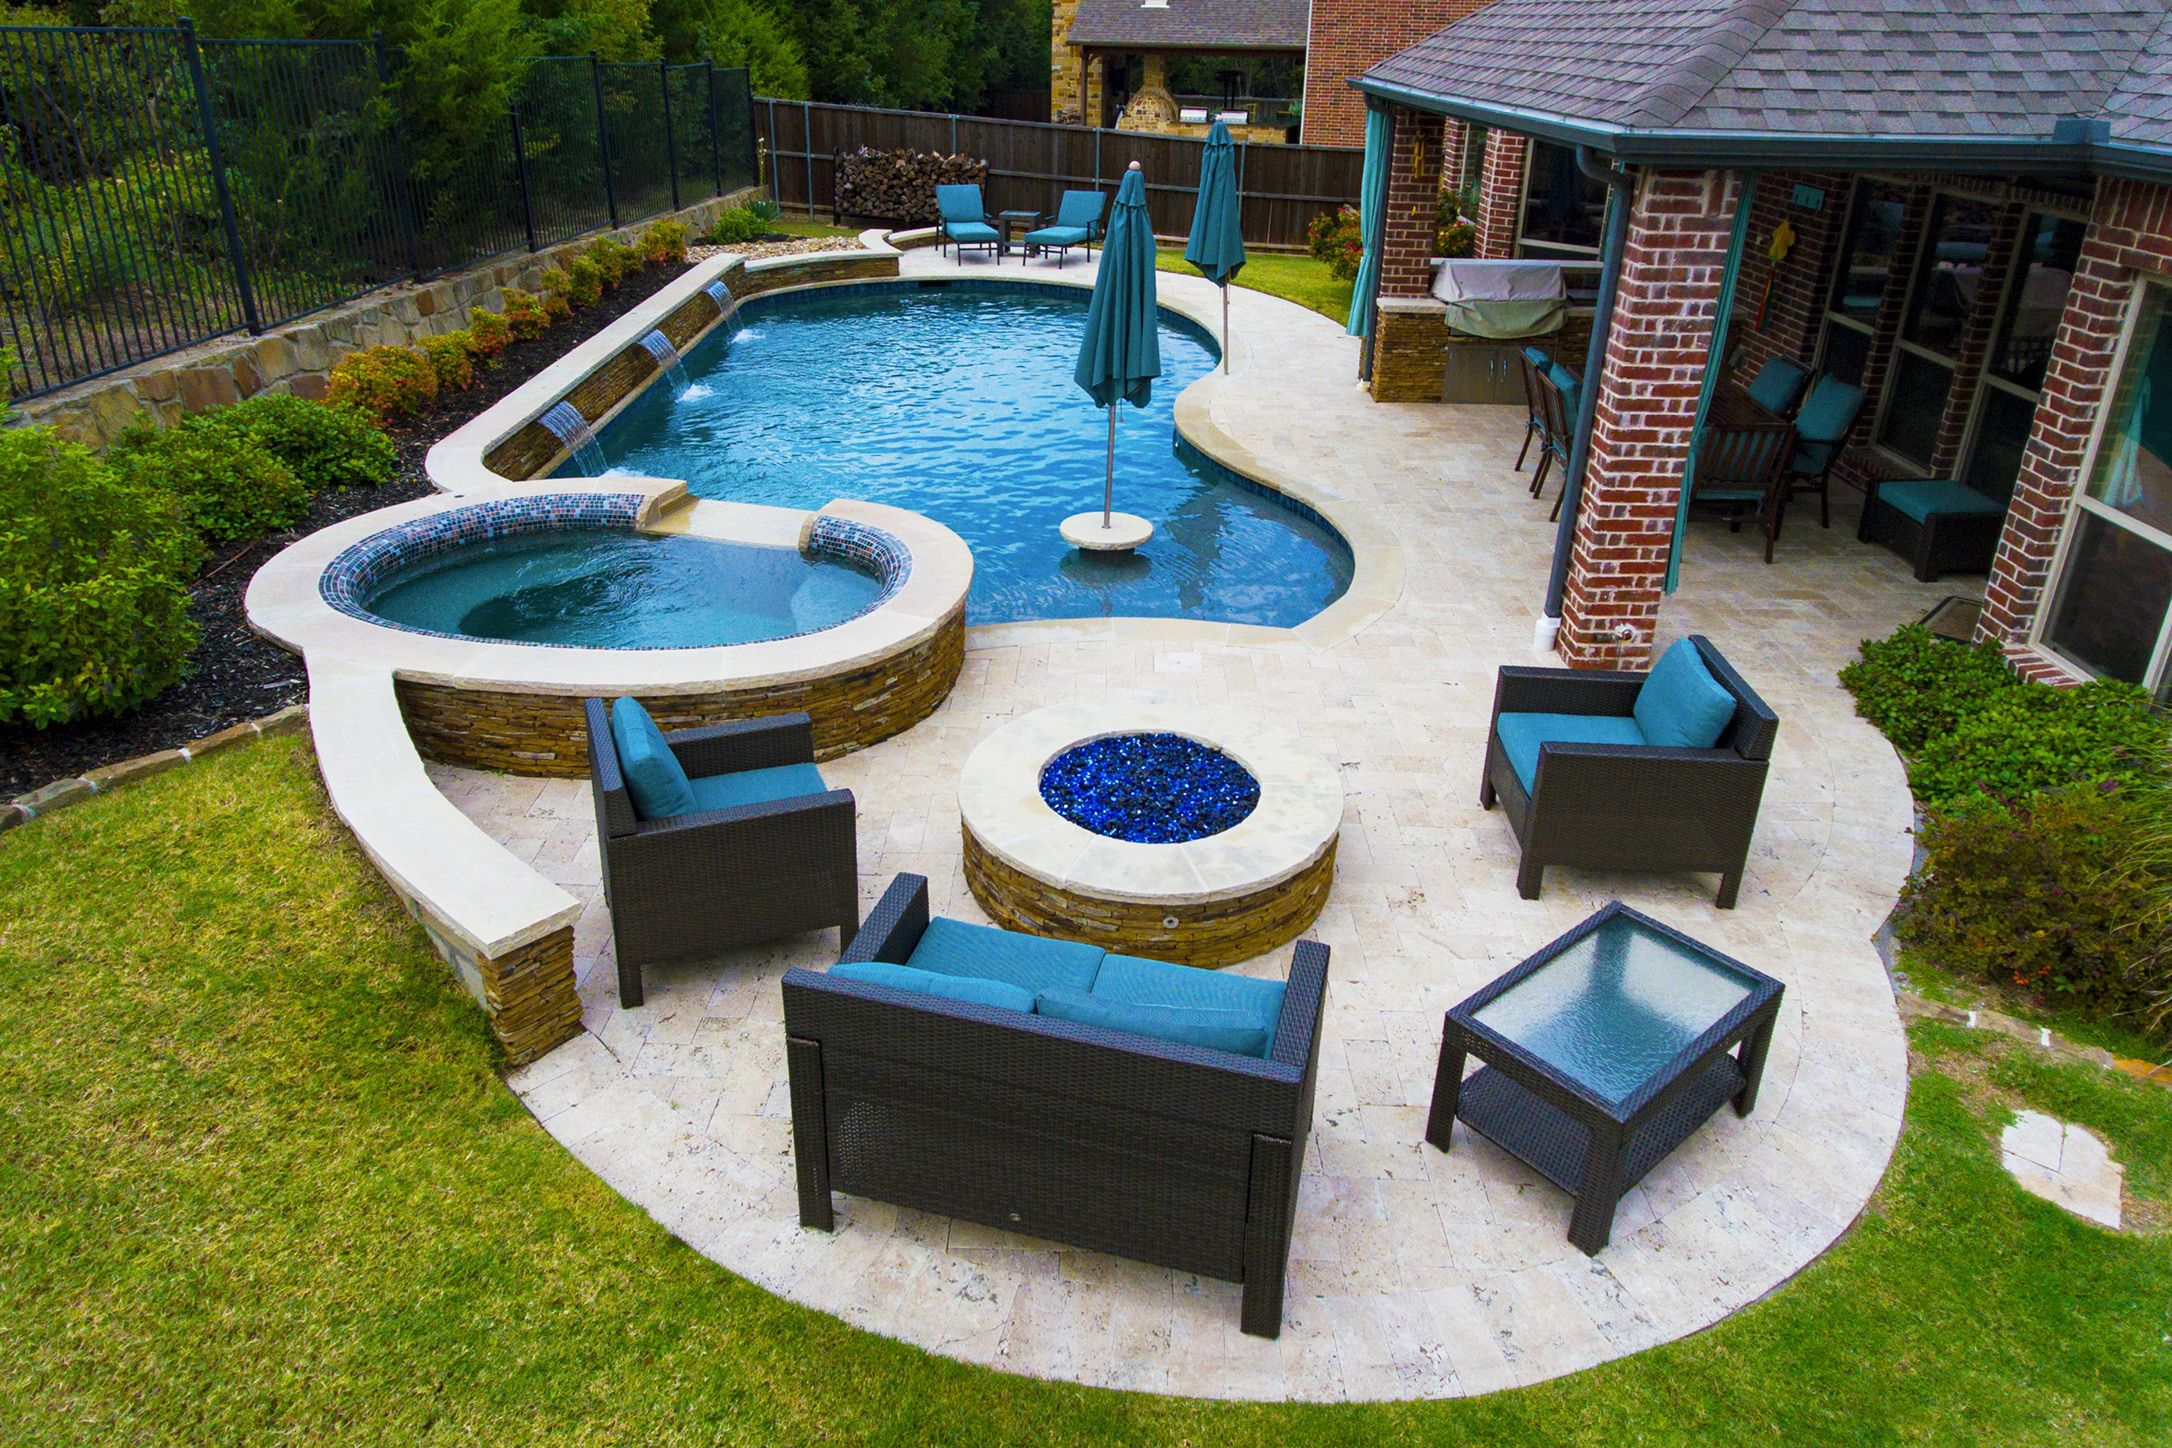 Rockwall Pool Design Dallas Photo Gallery Outdoor Living   Freeform Pool  And Spa With Sheer Descent